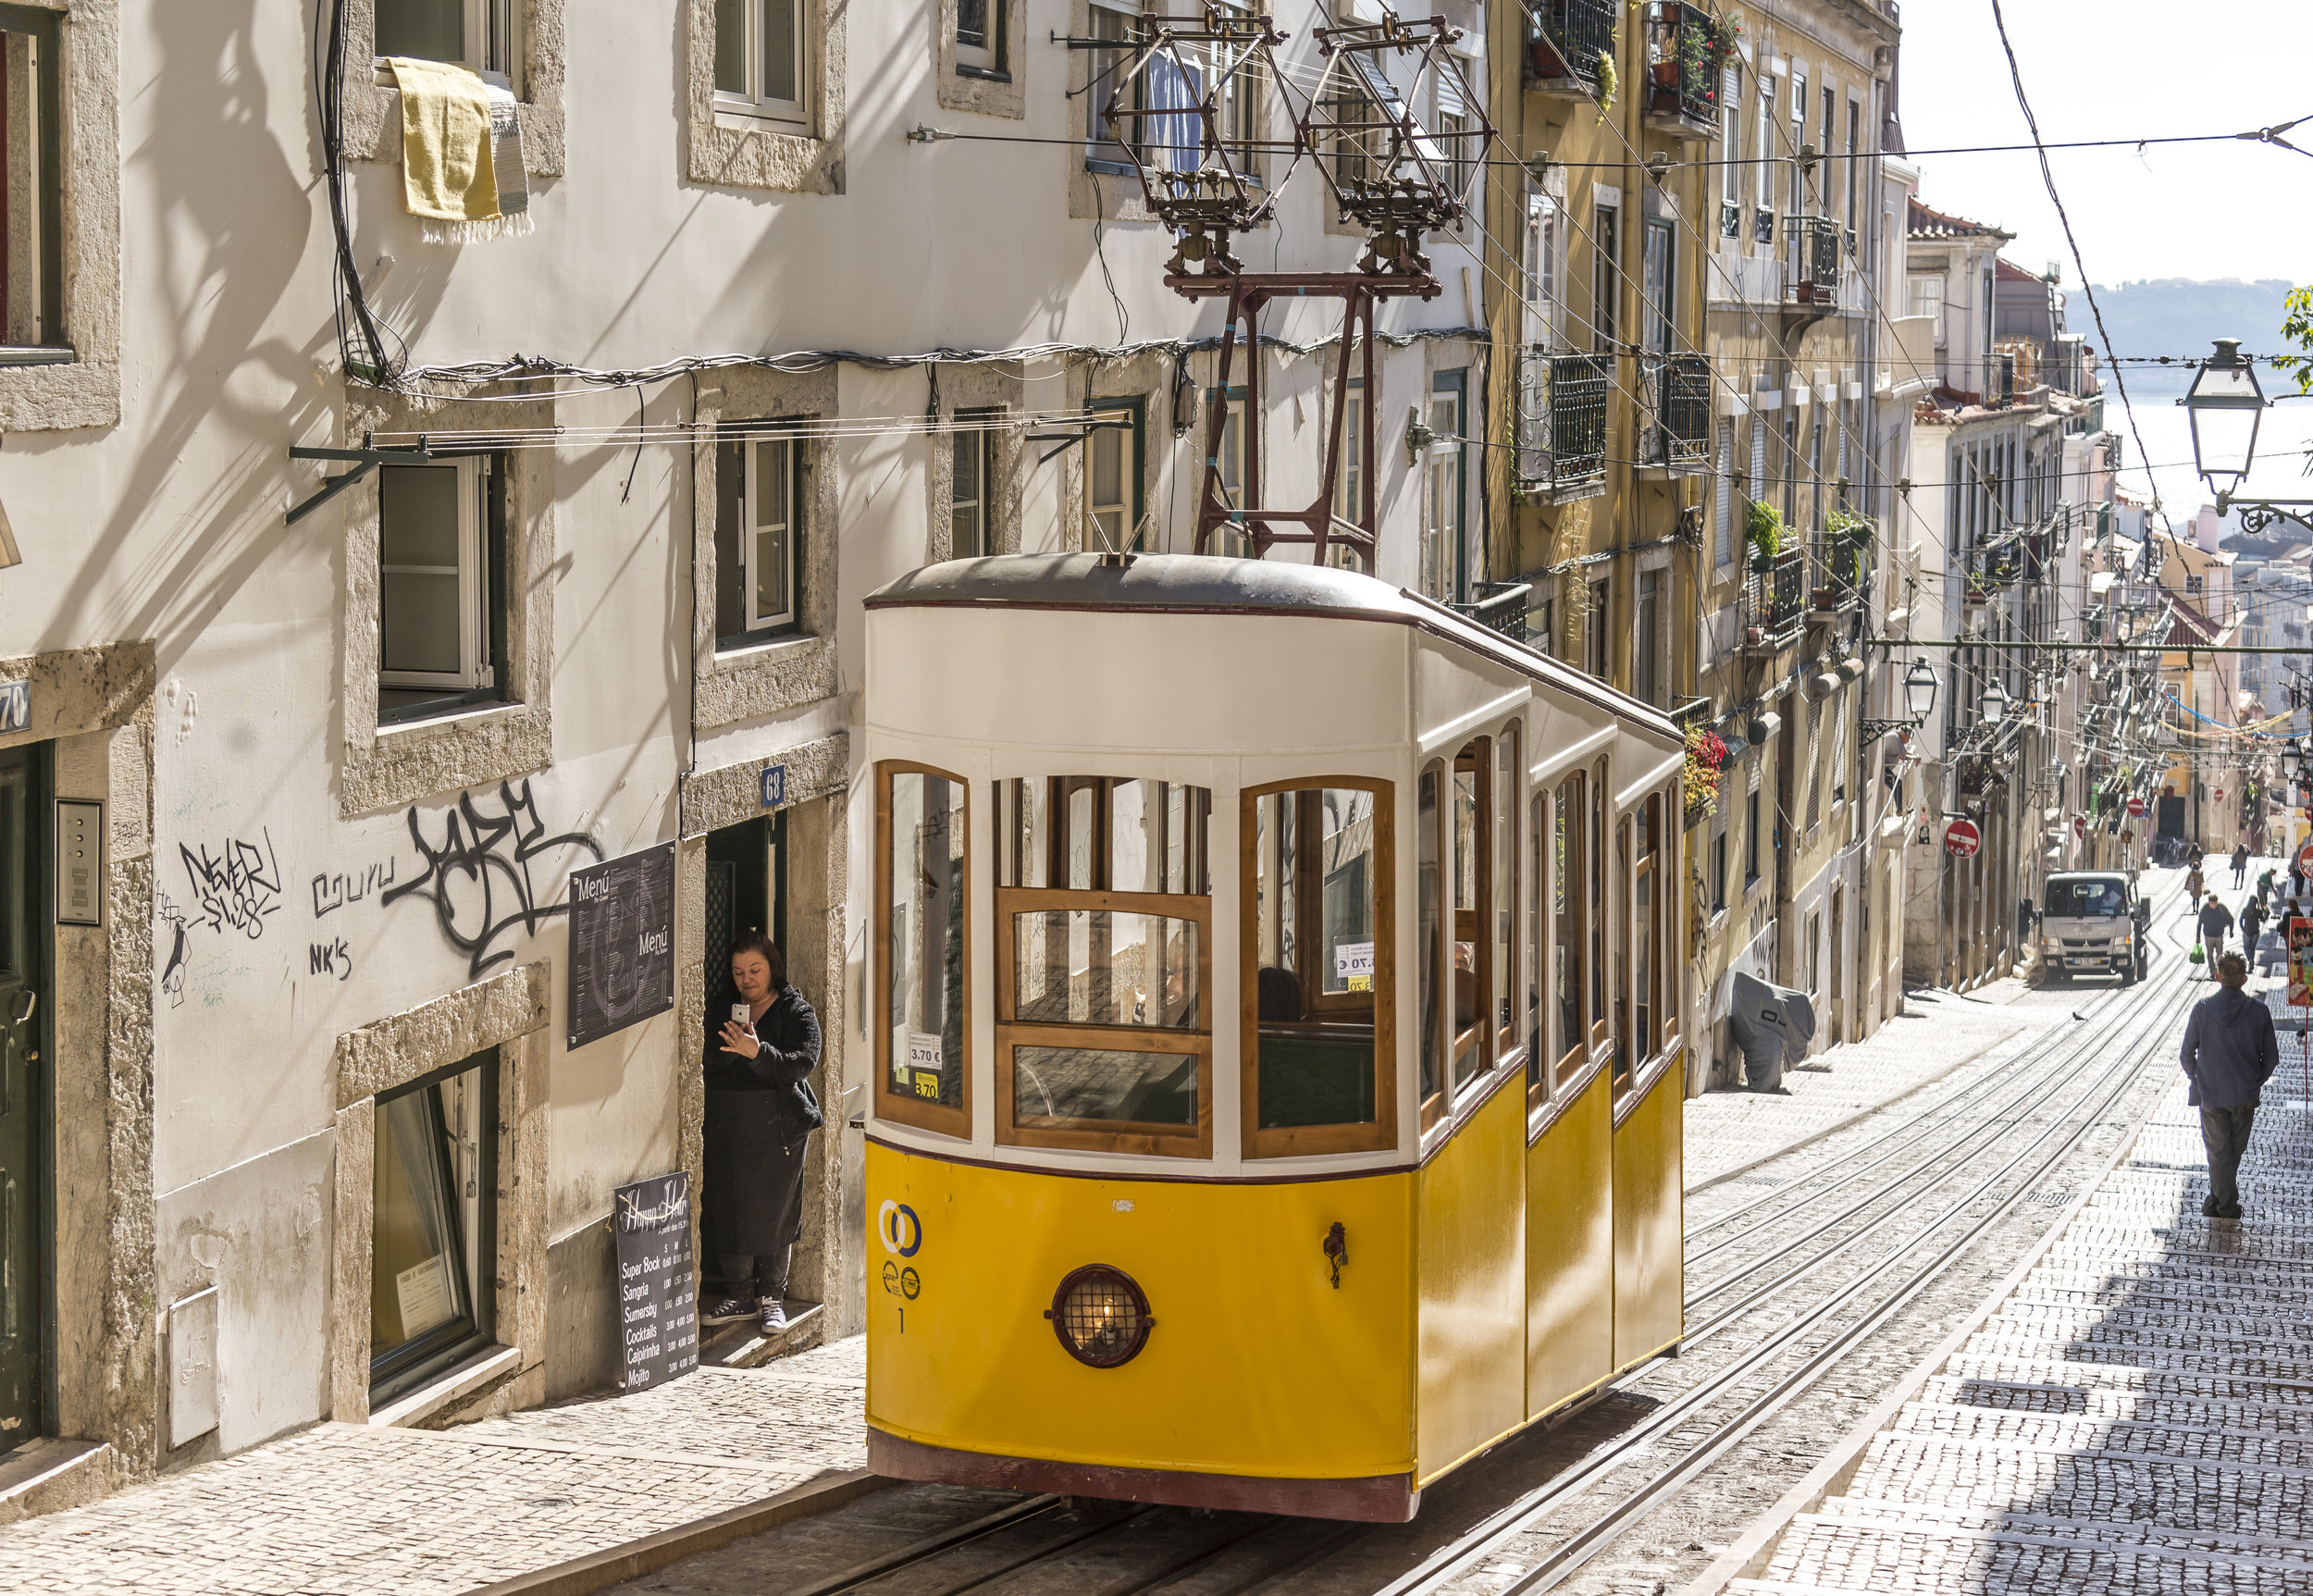 A view towards the tram in central Lisbon.